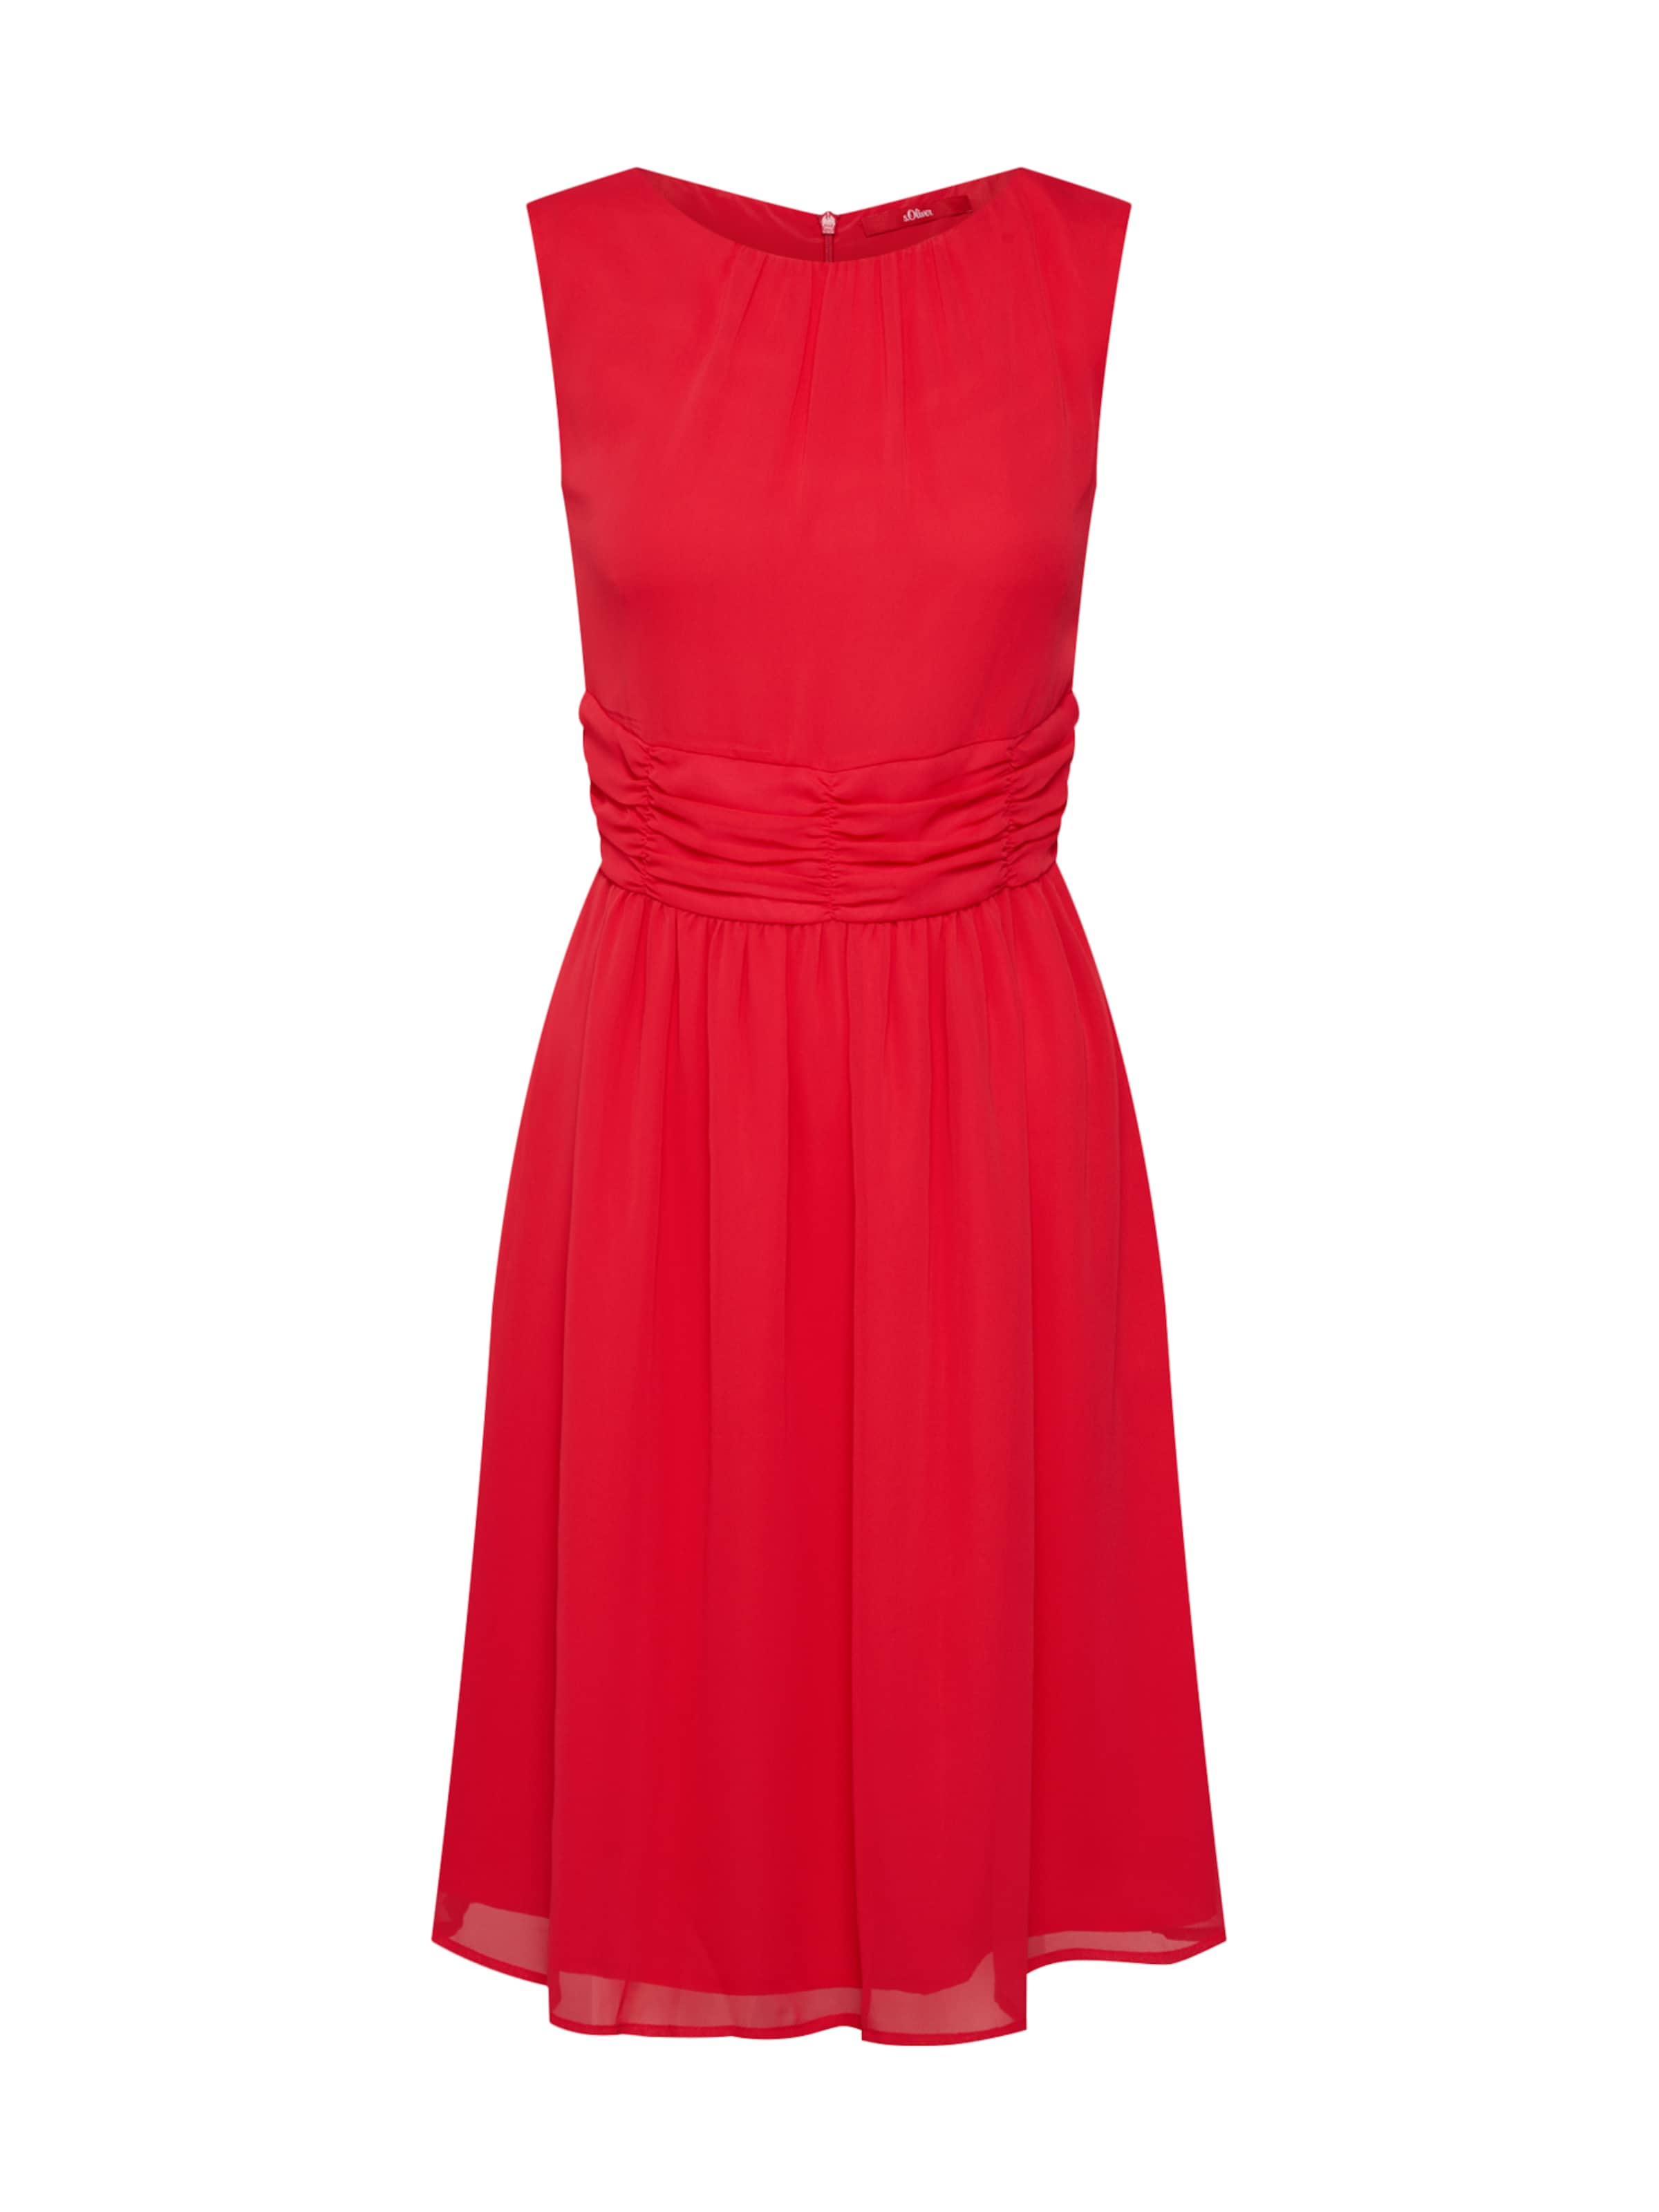 Red In 'kleid' Kleid S Hellrot oliver Label D2YH9WEI